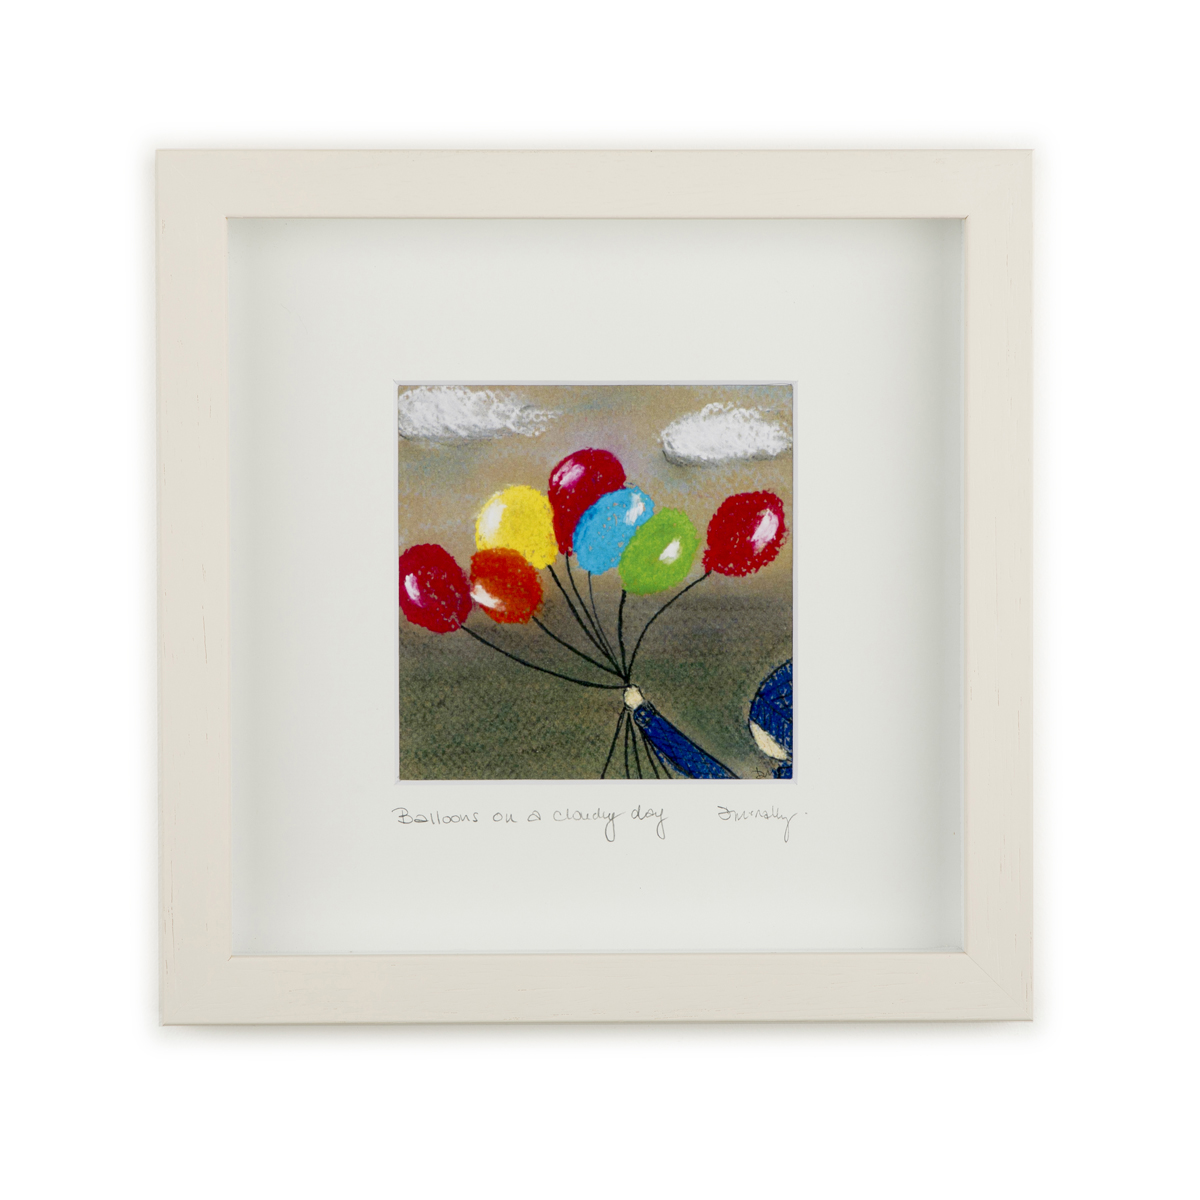 Balloons on a grey day Image